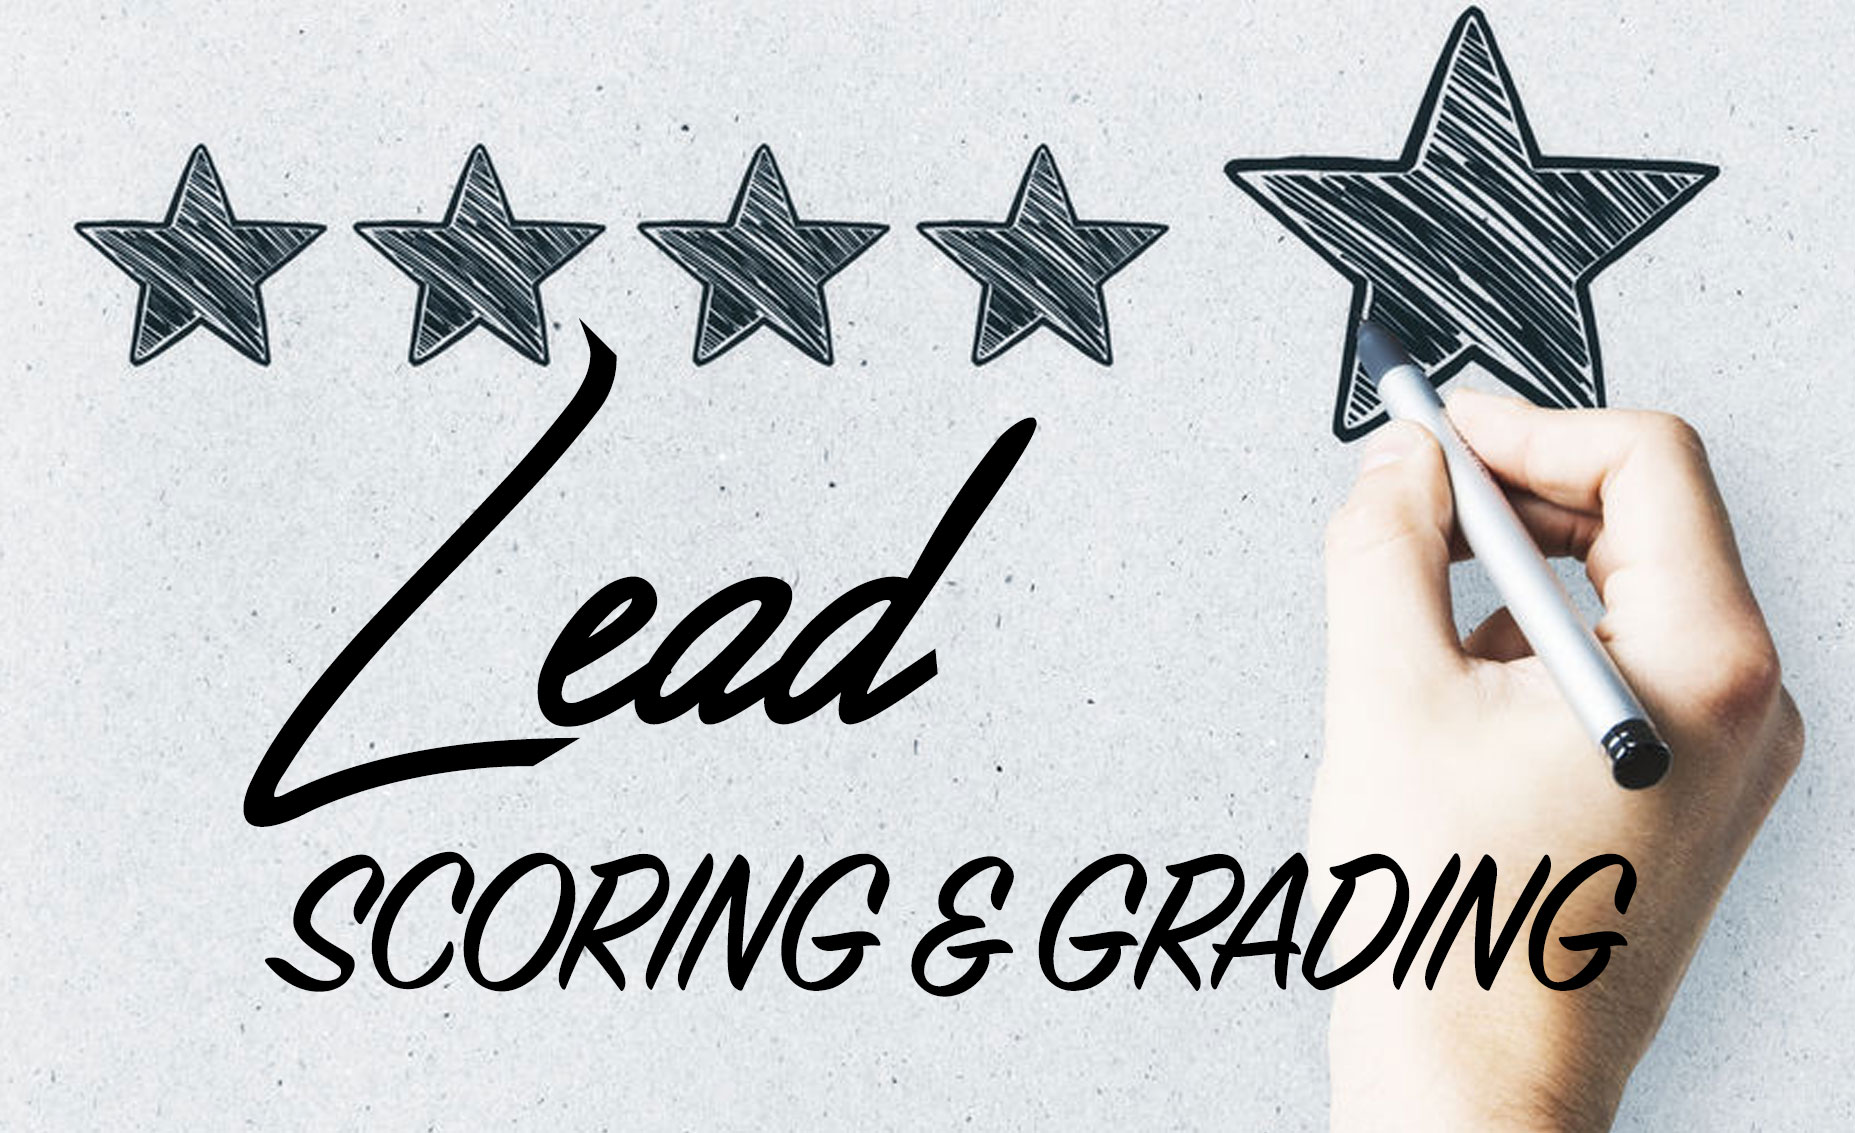 When collecting leads at any event, you should have in mind the important qualifiers that should be the topic of discussion in your event space, or on the trade show floor. Once you get your leads, you've got a couple ways to qualify: through GRADING or SCORING.